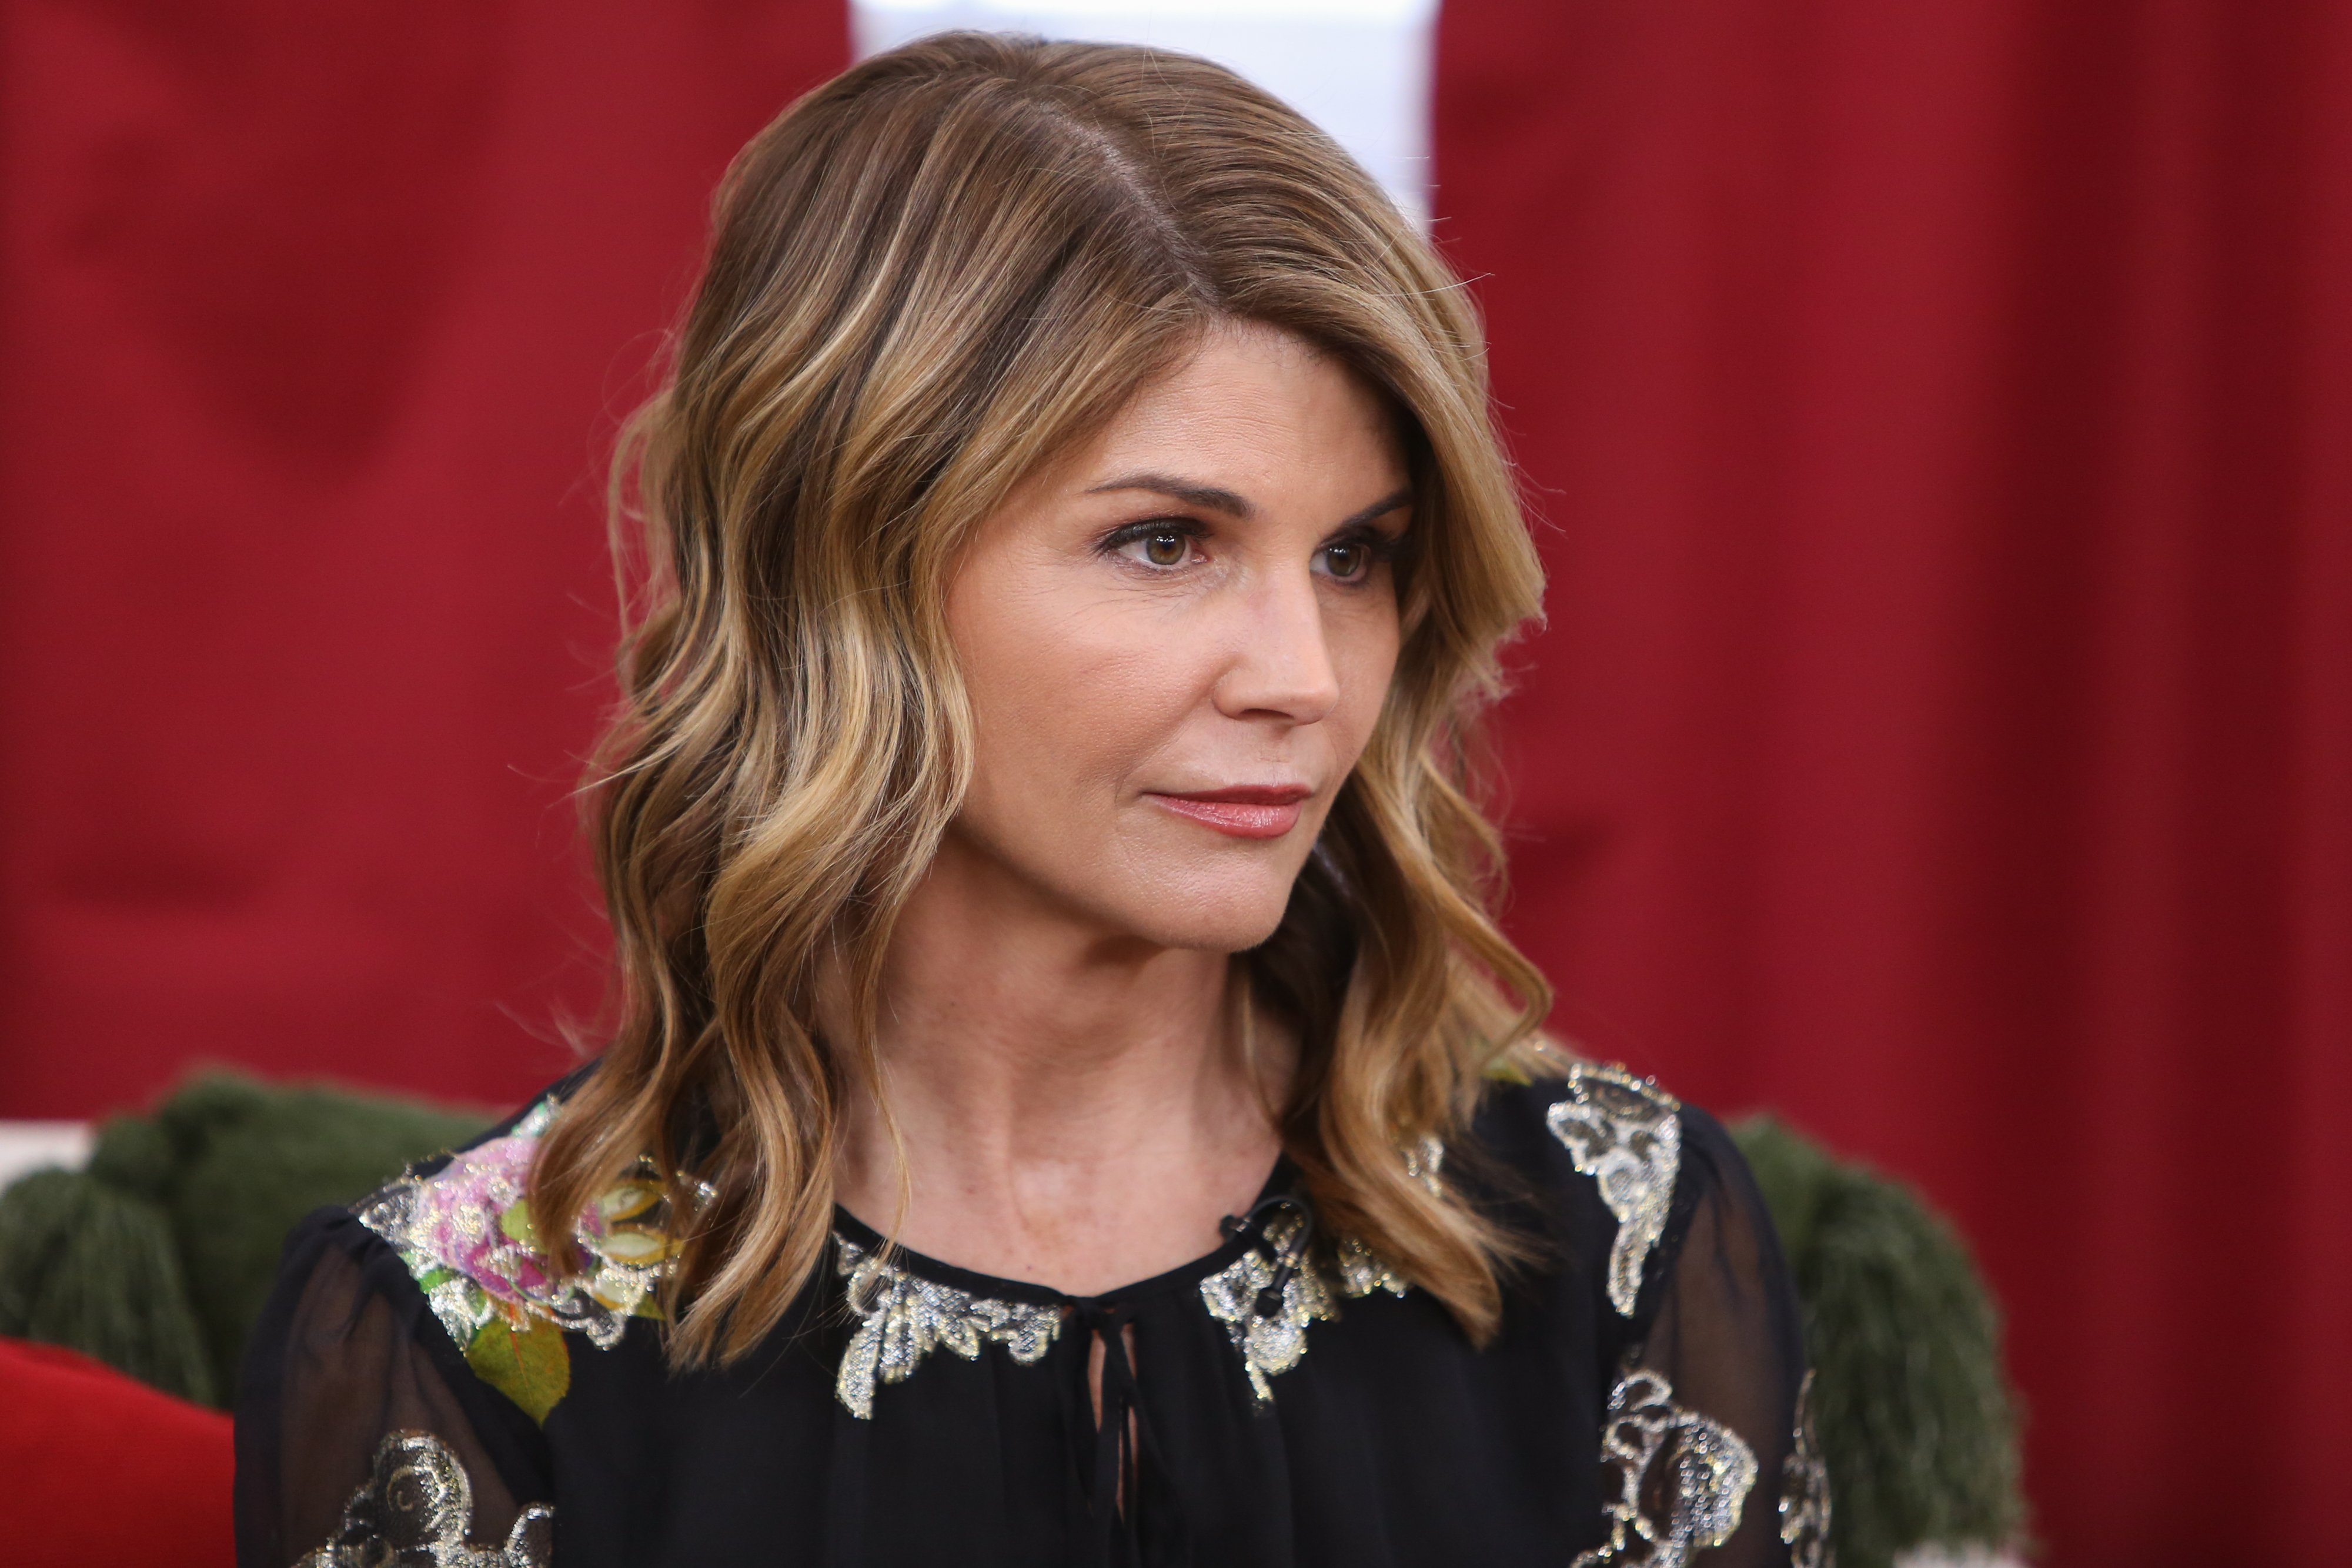 Lori Loughlin visiting Hallmark's 'Home & Family' at Universal Studios Hollywood on December 19, 2018 in Universal City, California. | Source: Getty